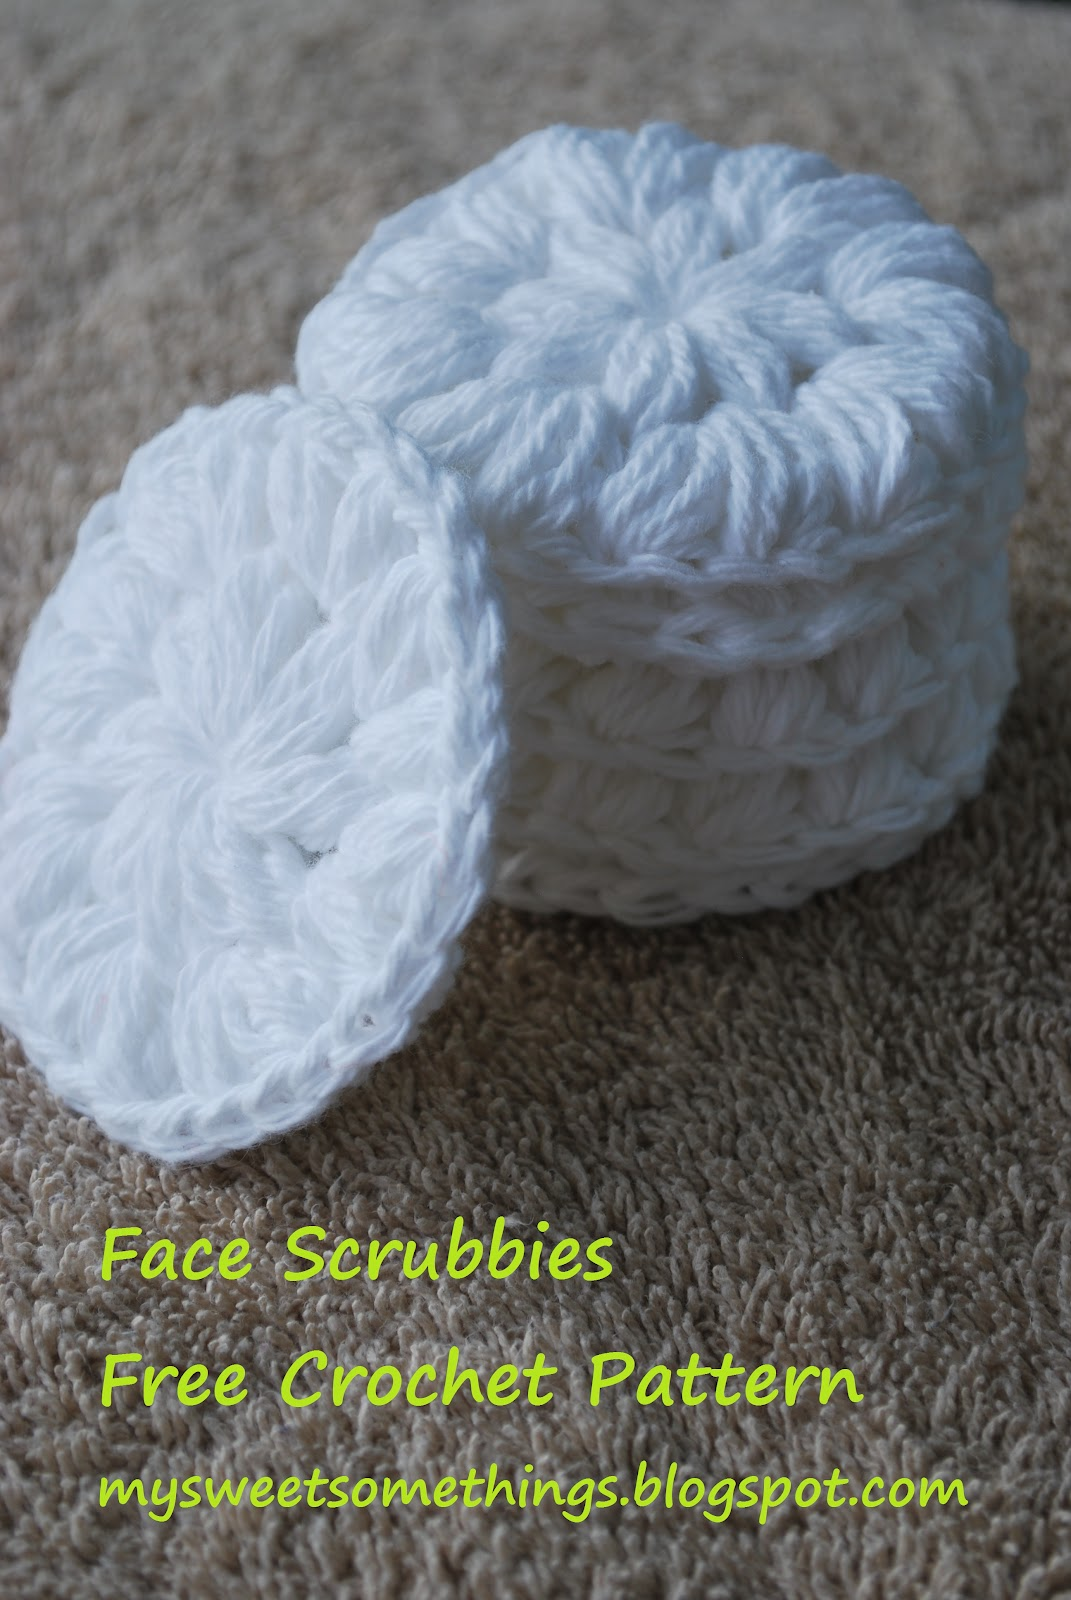 ... : Free Pattern Friday - Reusable Crochet Cotton Facial Scrubbies